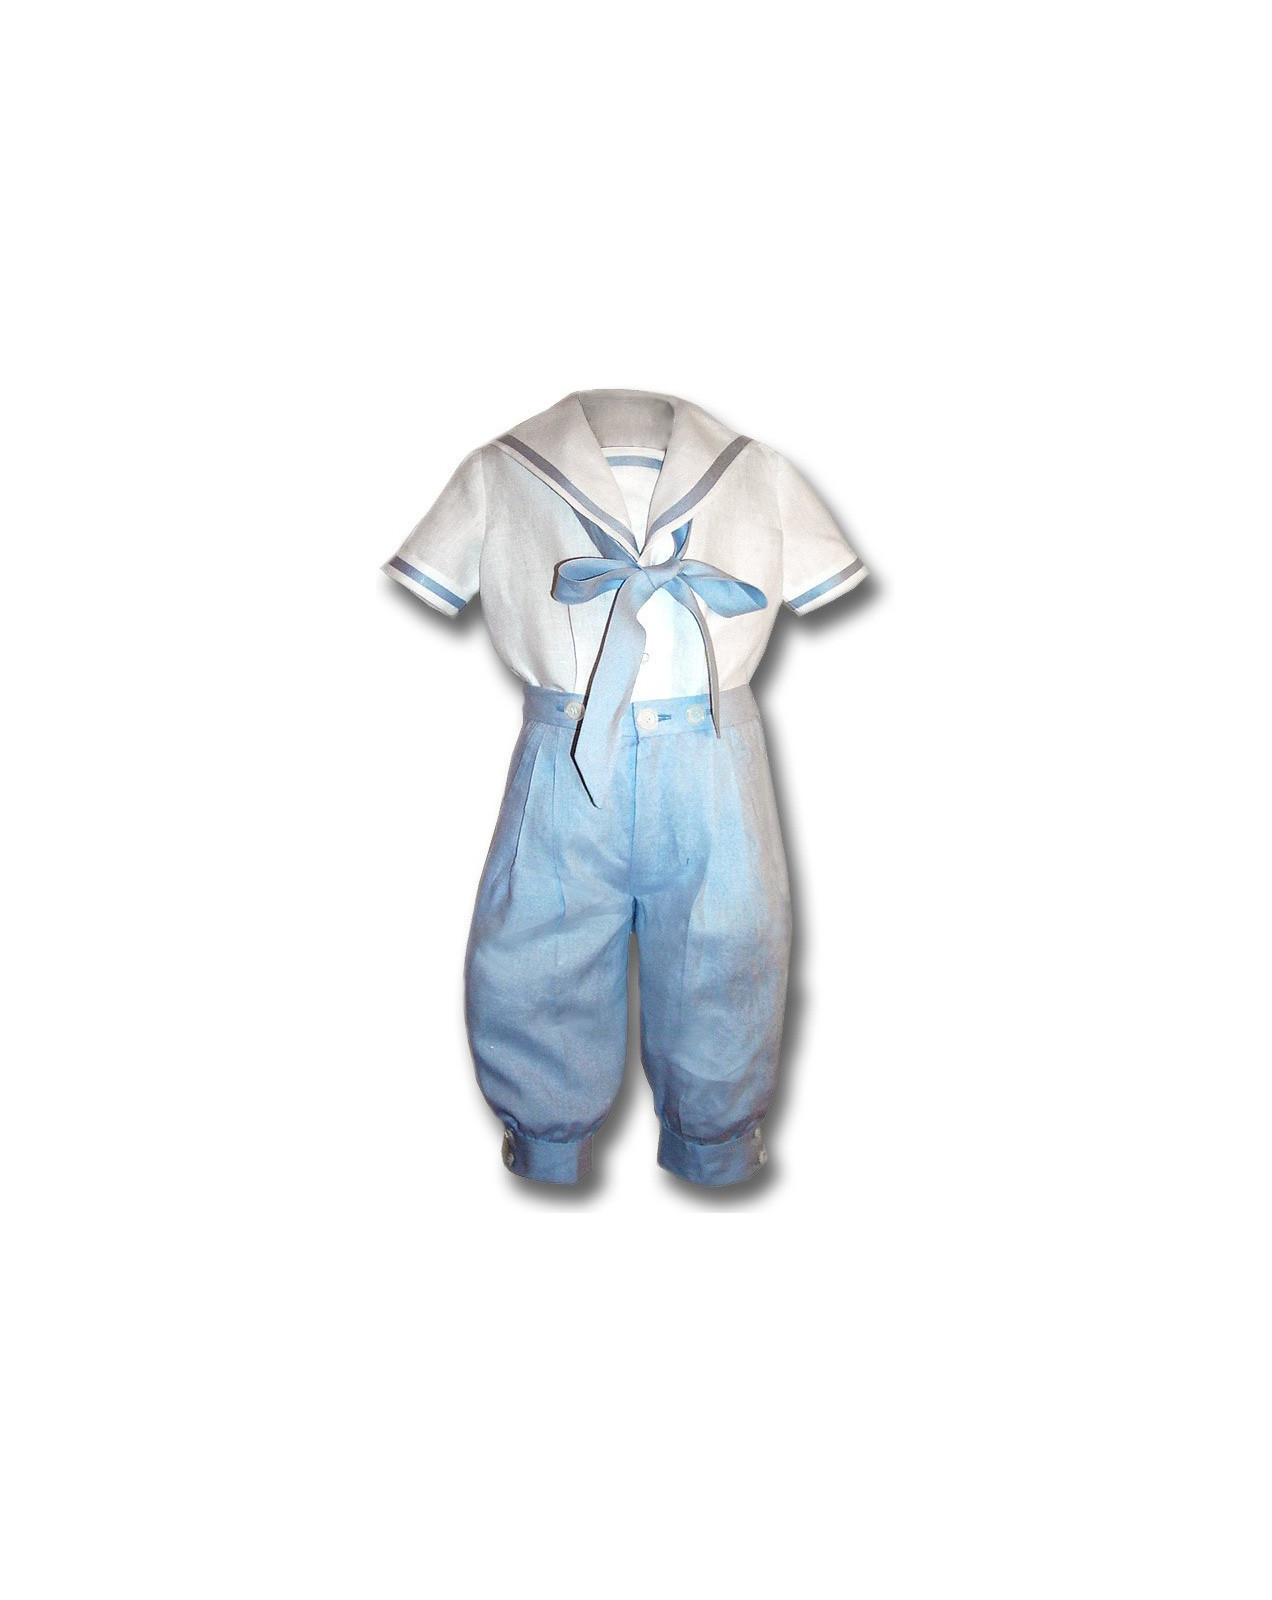 Ubaldo boy sailor outfit pale blue